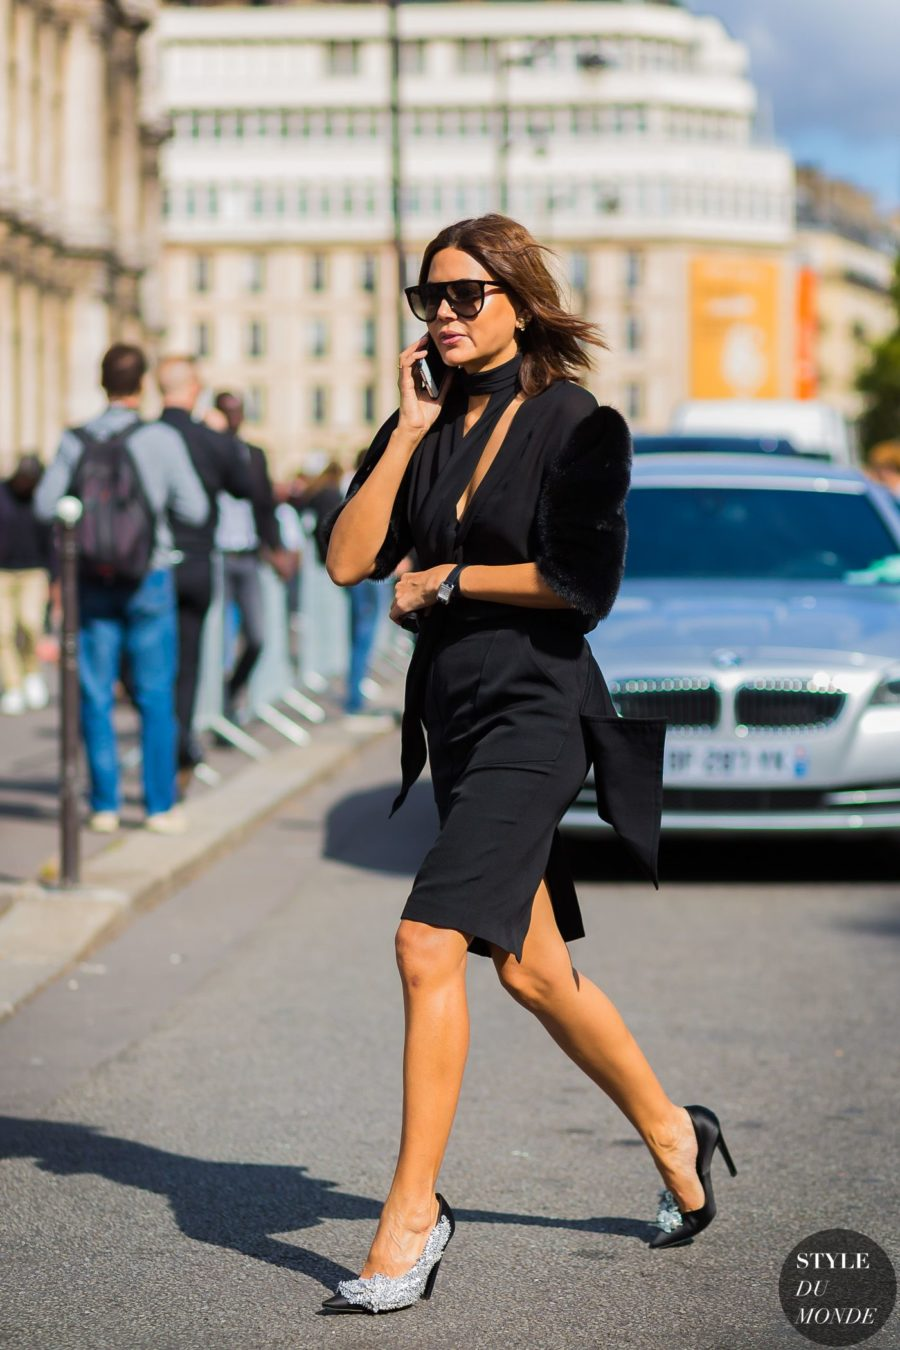 7 Ways to Look More Powerful - christine centenera street style, power dressing // Notjessfashion.com